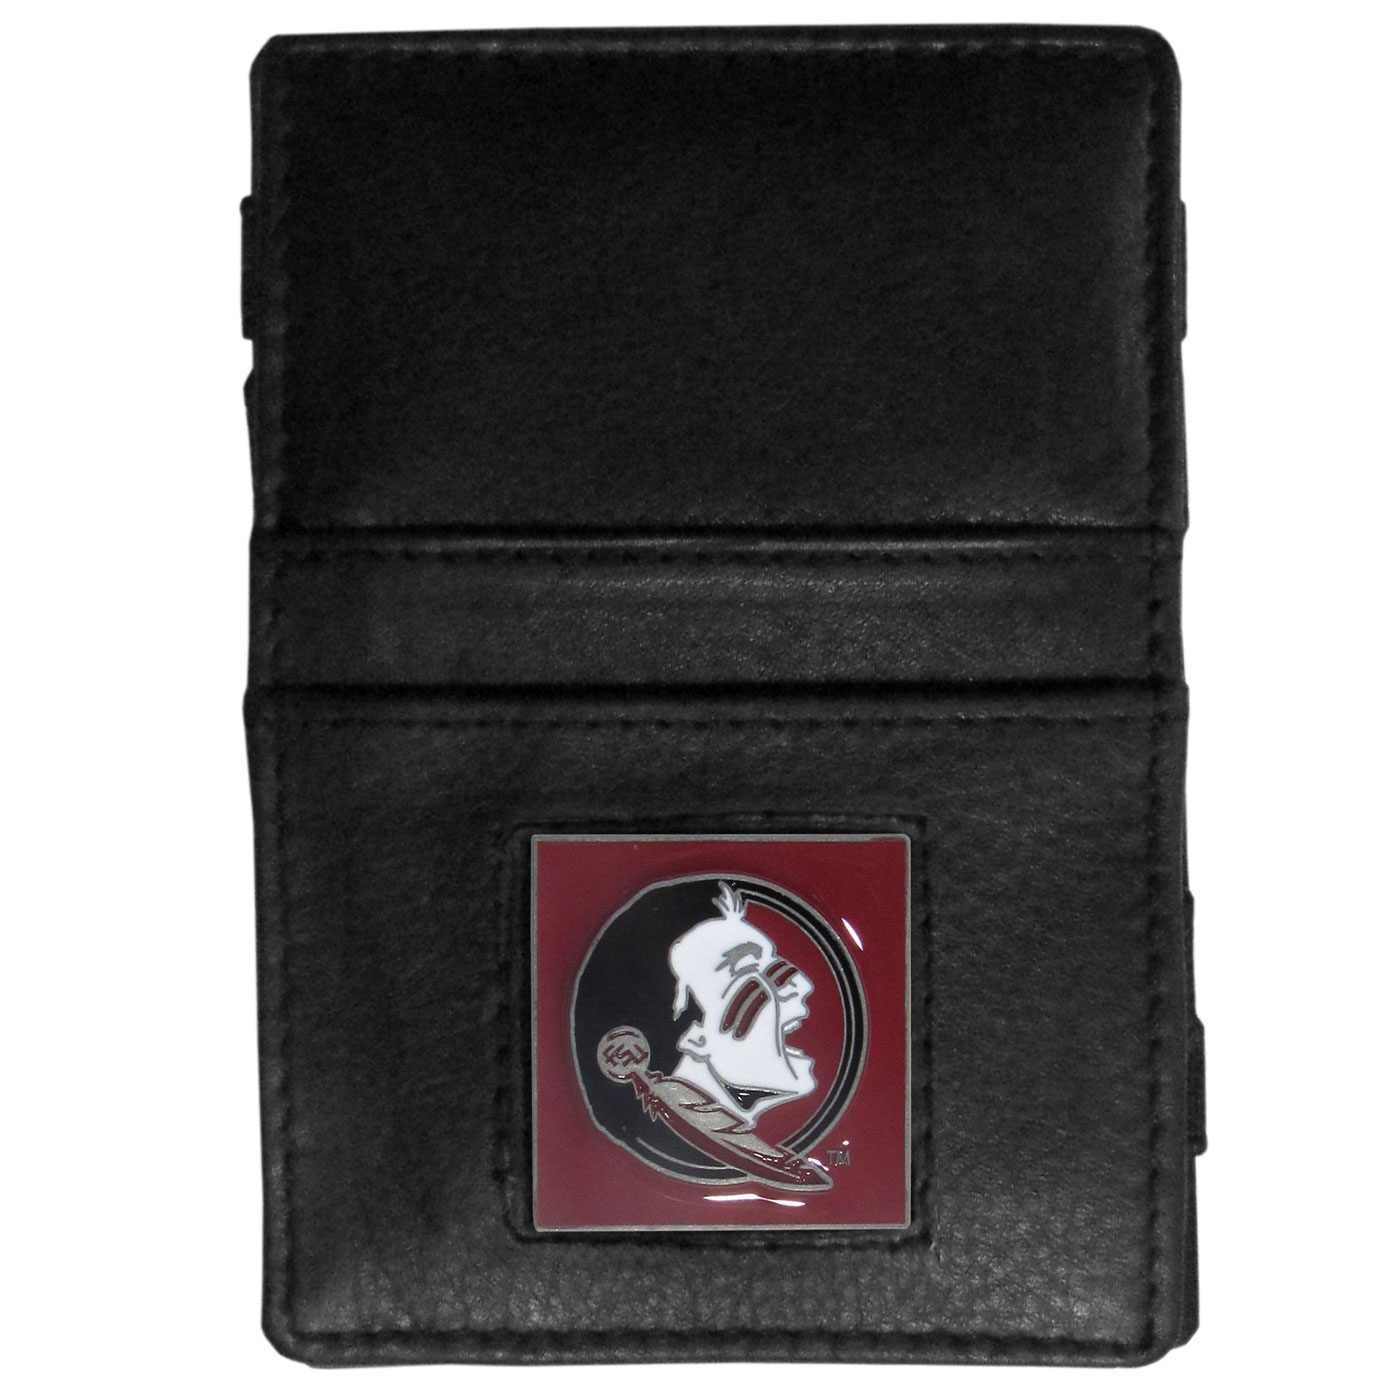 Florida State Seminoles Leather Jacob's Ladder Wallet - This innovative jacob's ladder wallet design traps cash with just a simple flip of the wallet! There are also outer pockets to store your ID and credit cards. The wallet is made of fine quality leather with an enameled Florida State Seminoles emblem. Thank you for shopping with CrazedOutSports.com